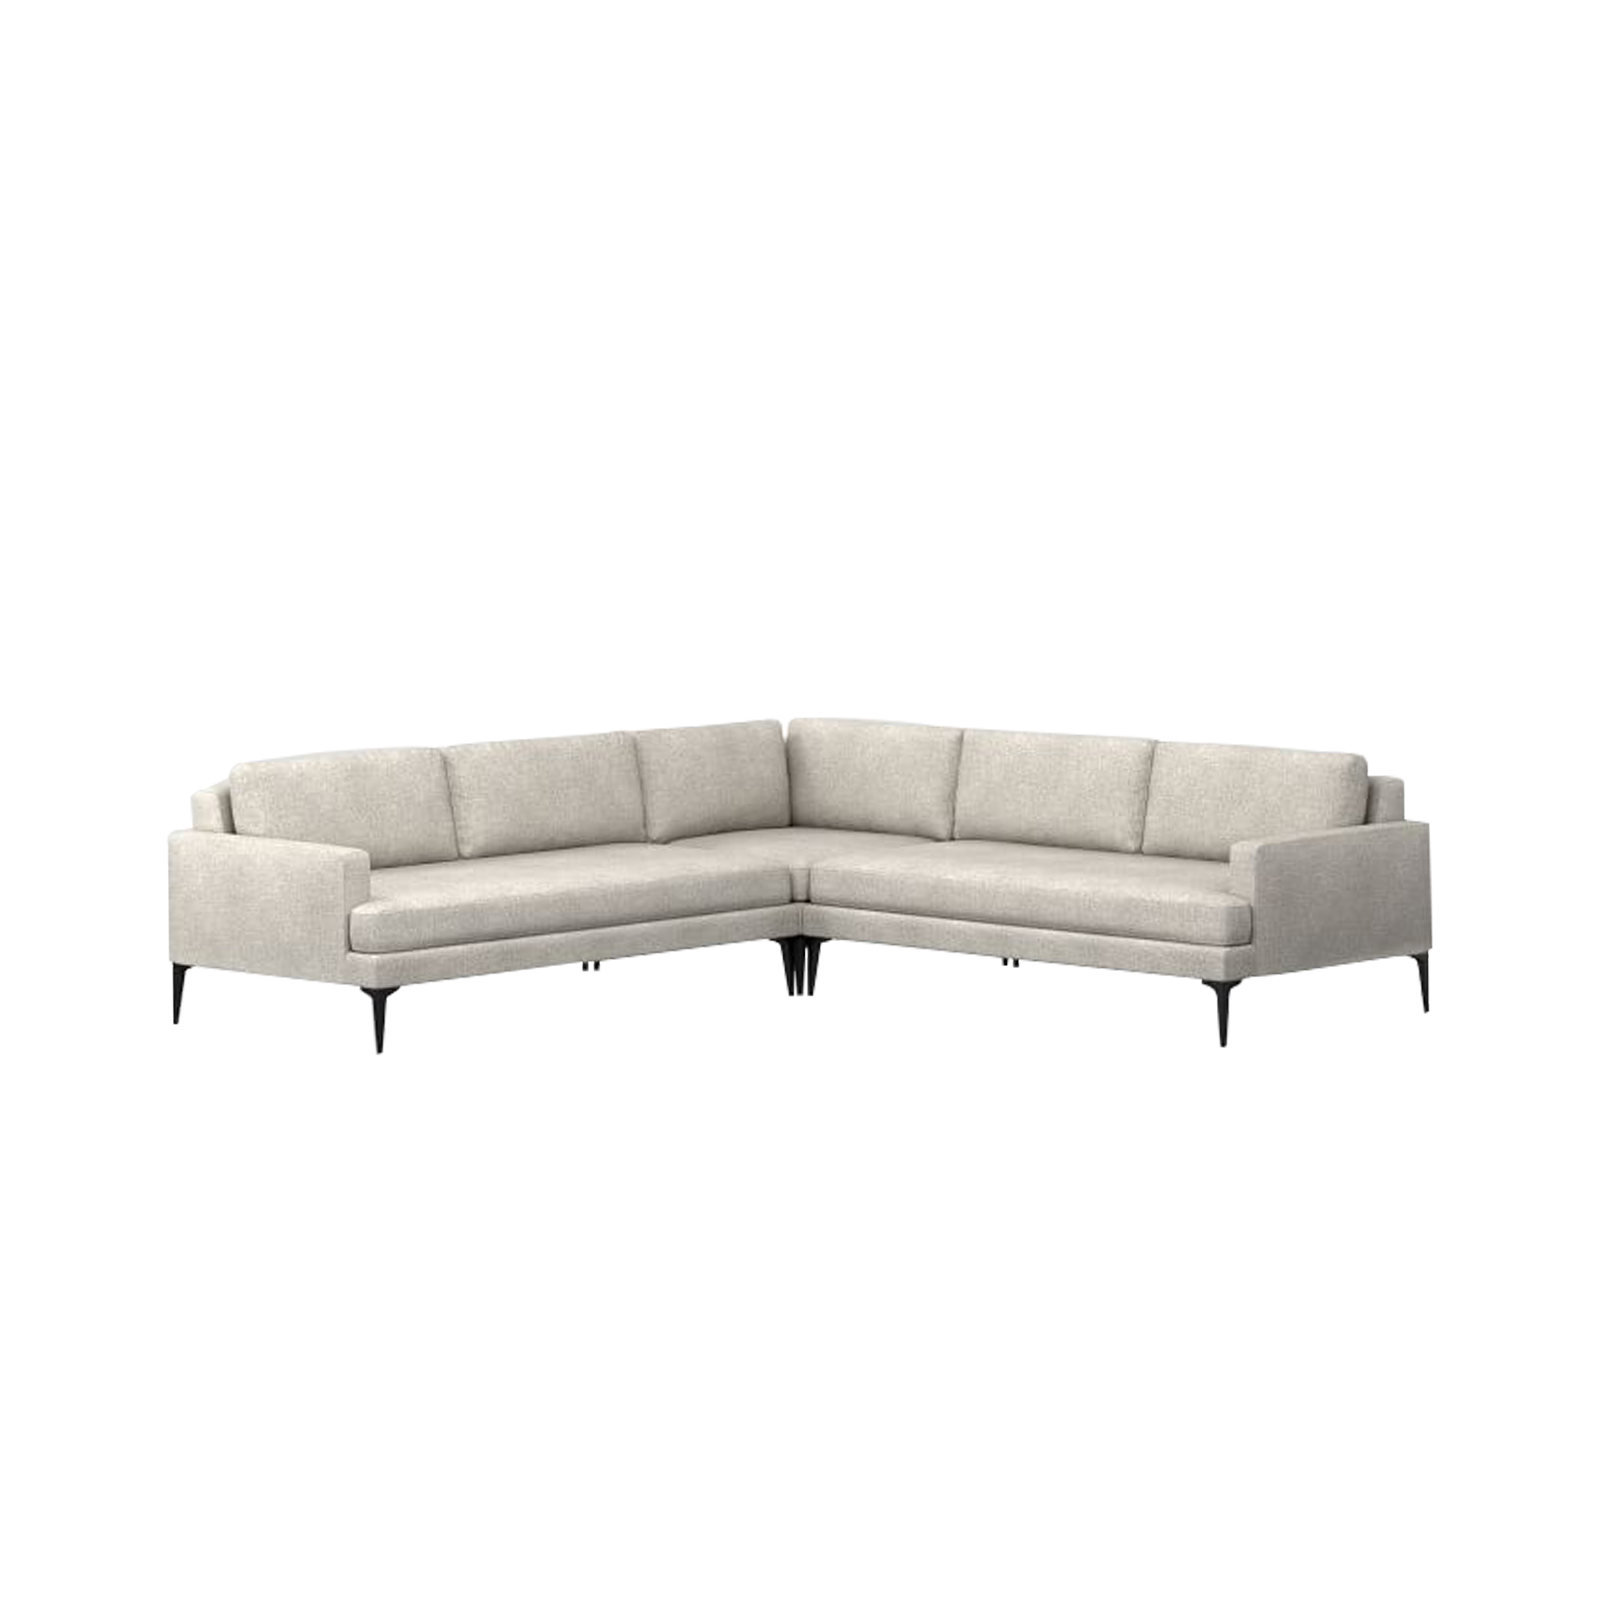 Miraculous Andes L Shaped Sectional Event Trade Show Furniture Rental Alphanode Cool Chair Designs And Ideas Alphanodeonline